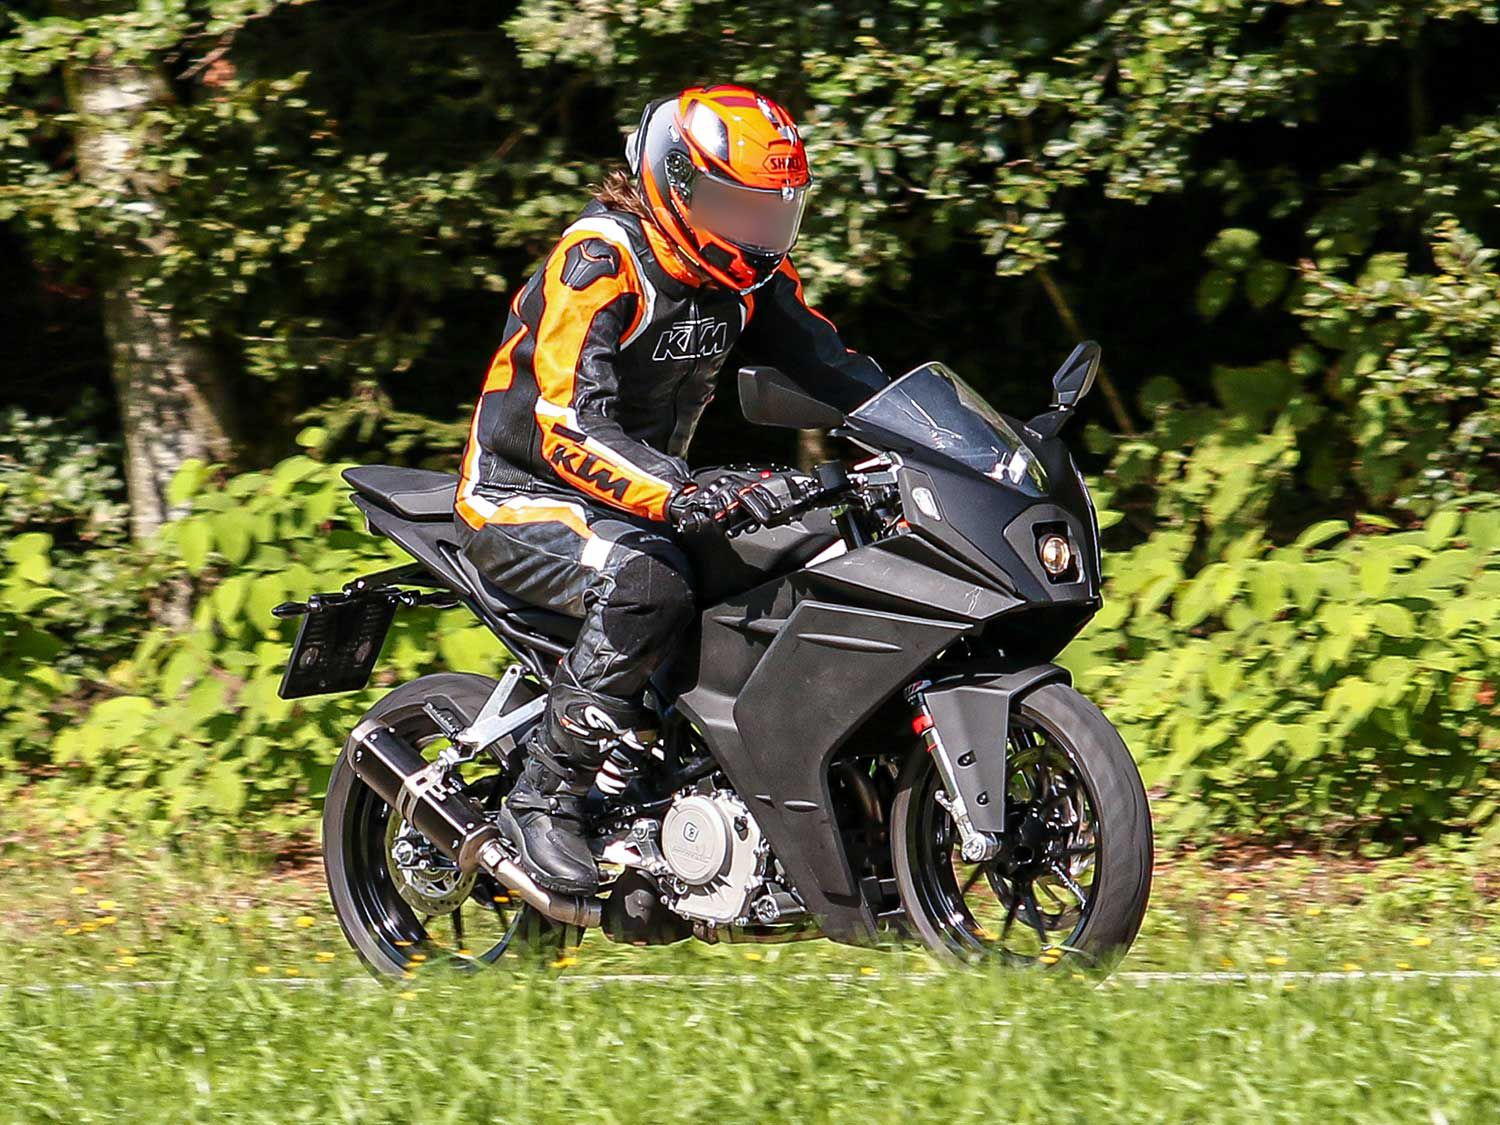 2020 Ktm Rc 390 Spied Testing Motorcyclist